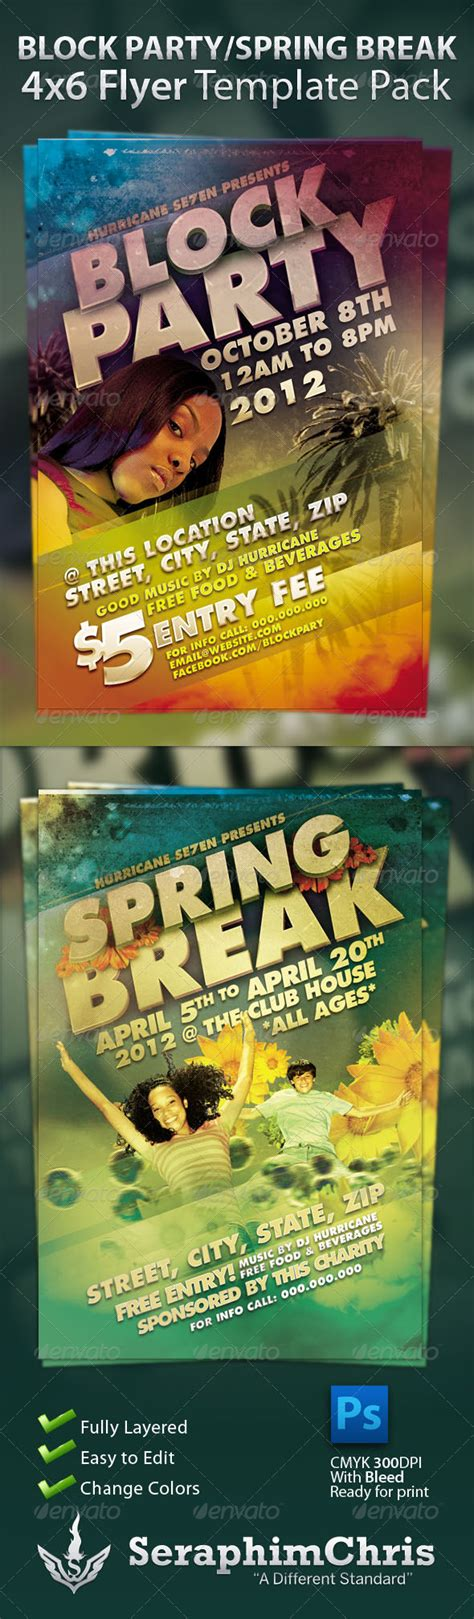 Block Party And Spring Break Flyer Template Pack By Seraphimchris Graphicriver Block Flyer Template Summer